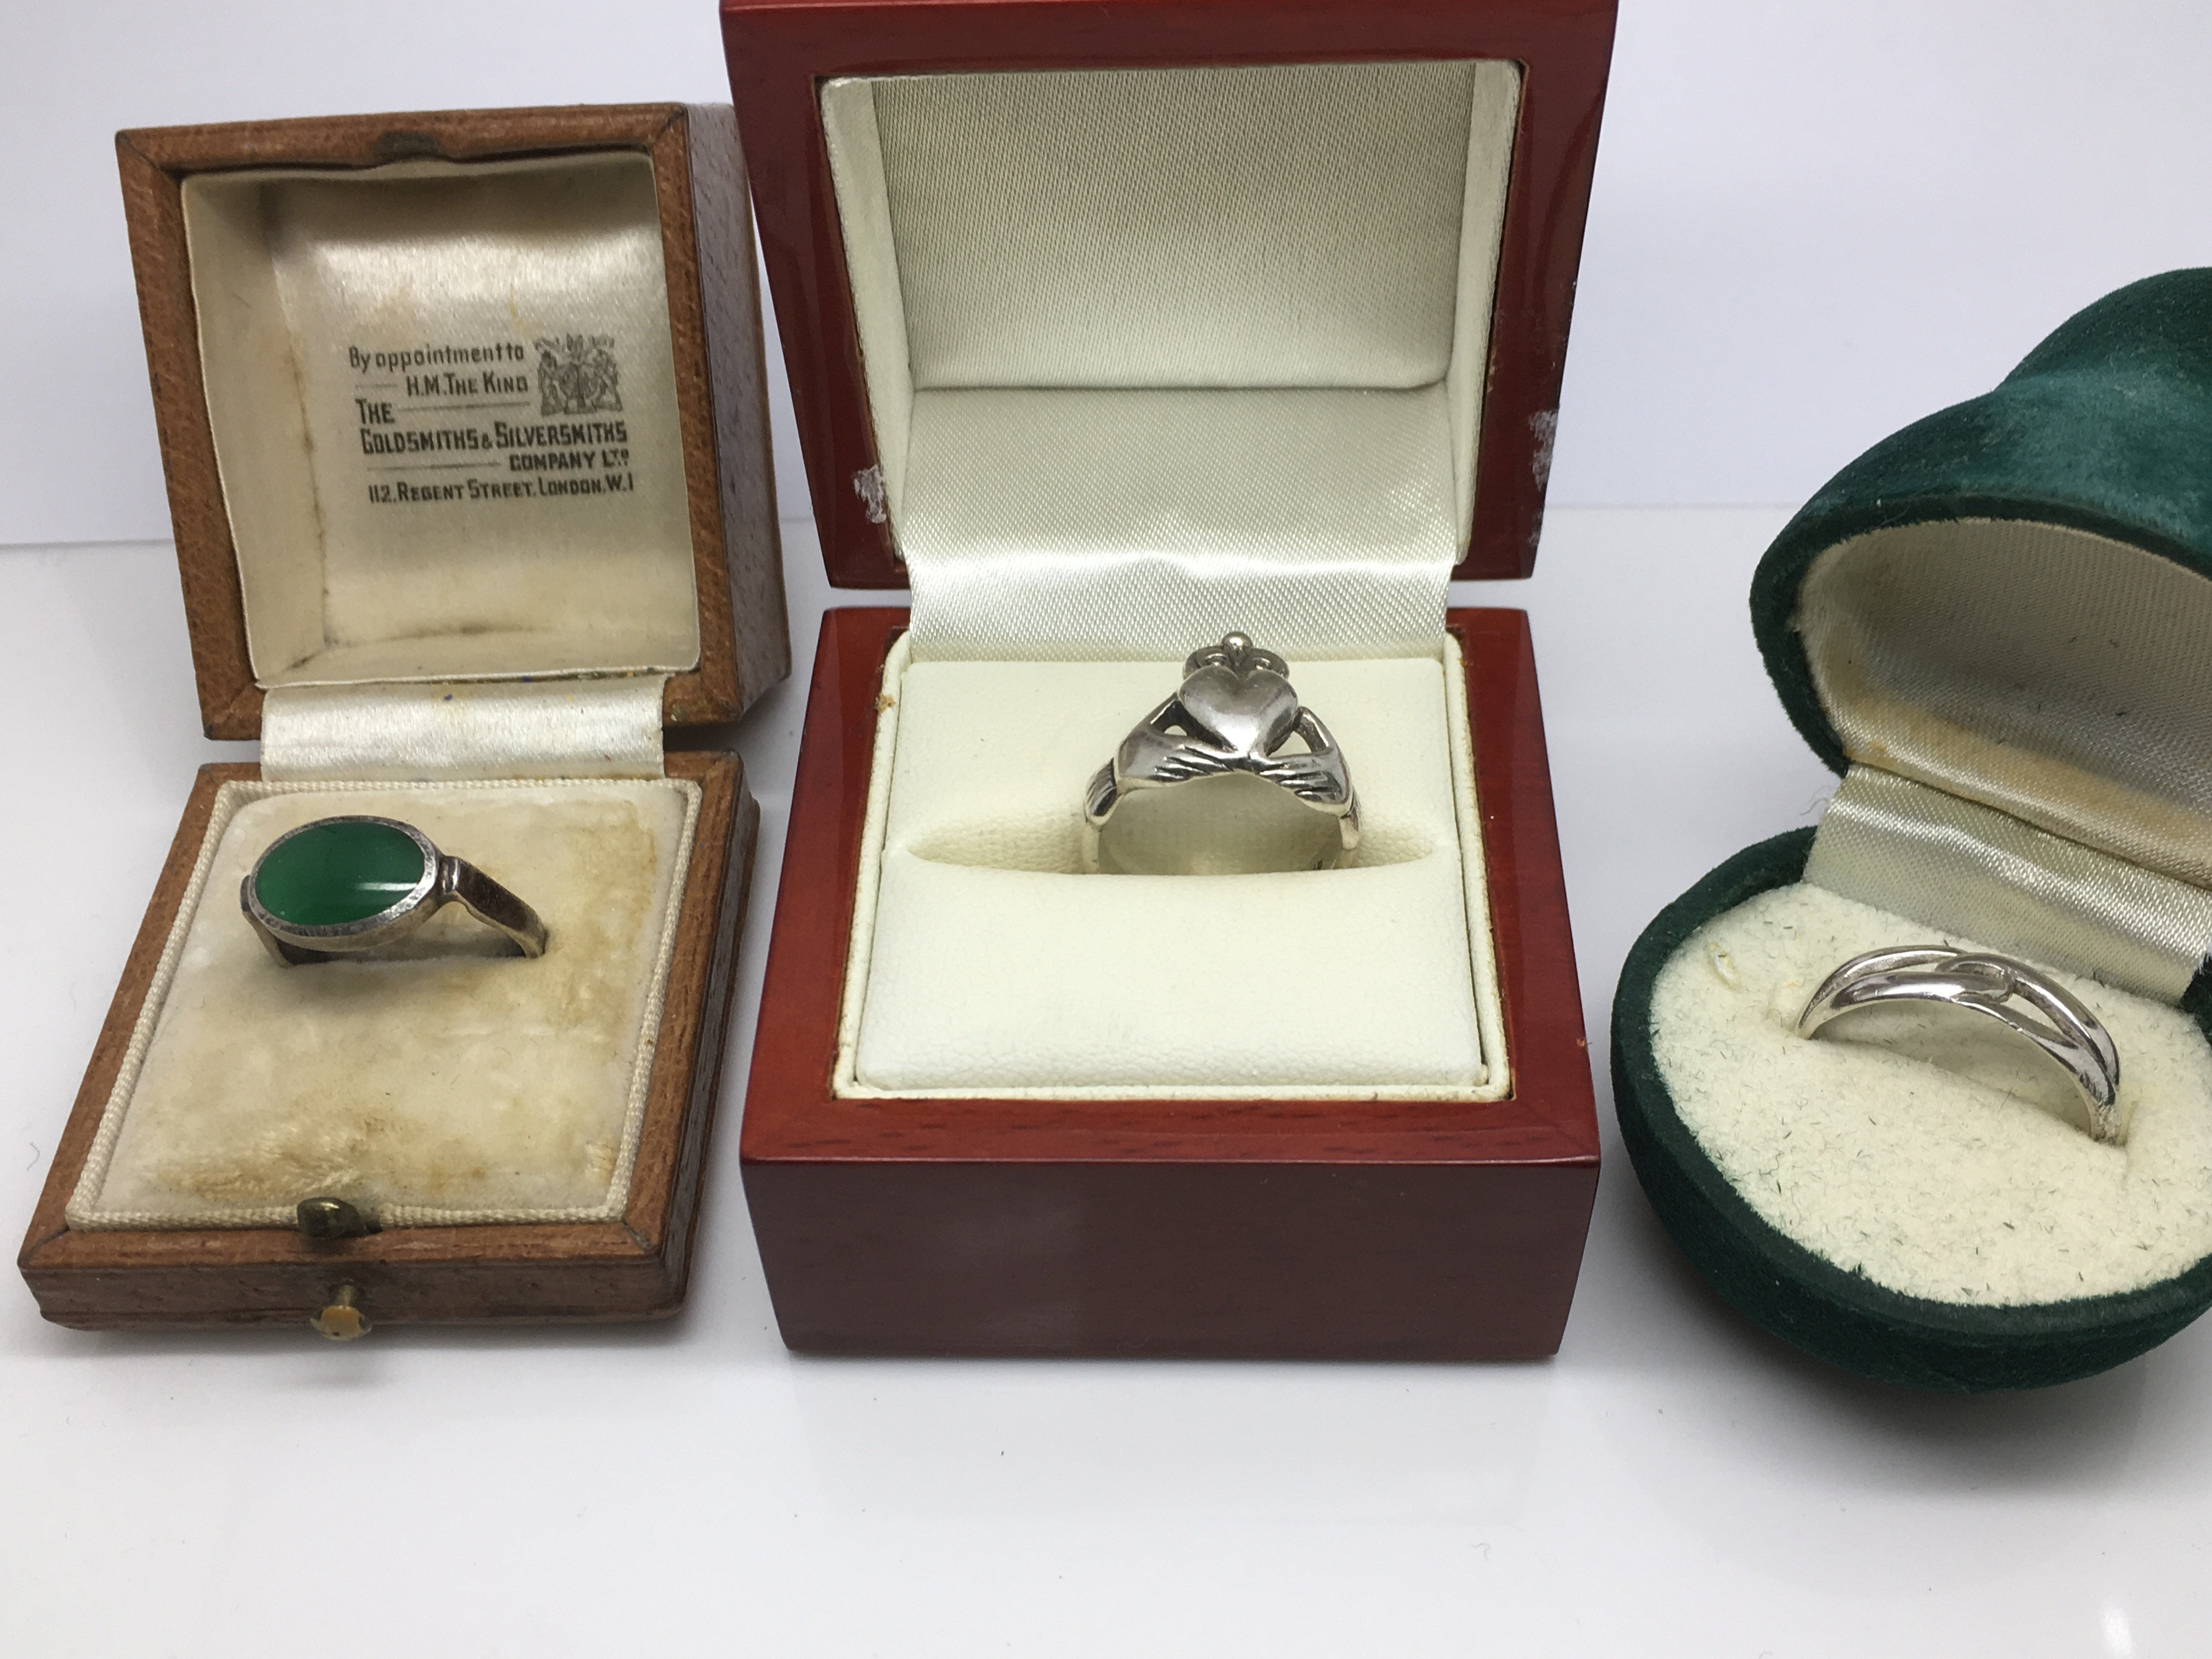 Lot 33 - Three silver rings in boxes, one with a jade type